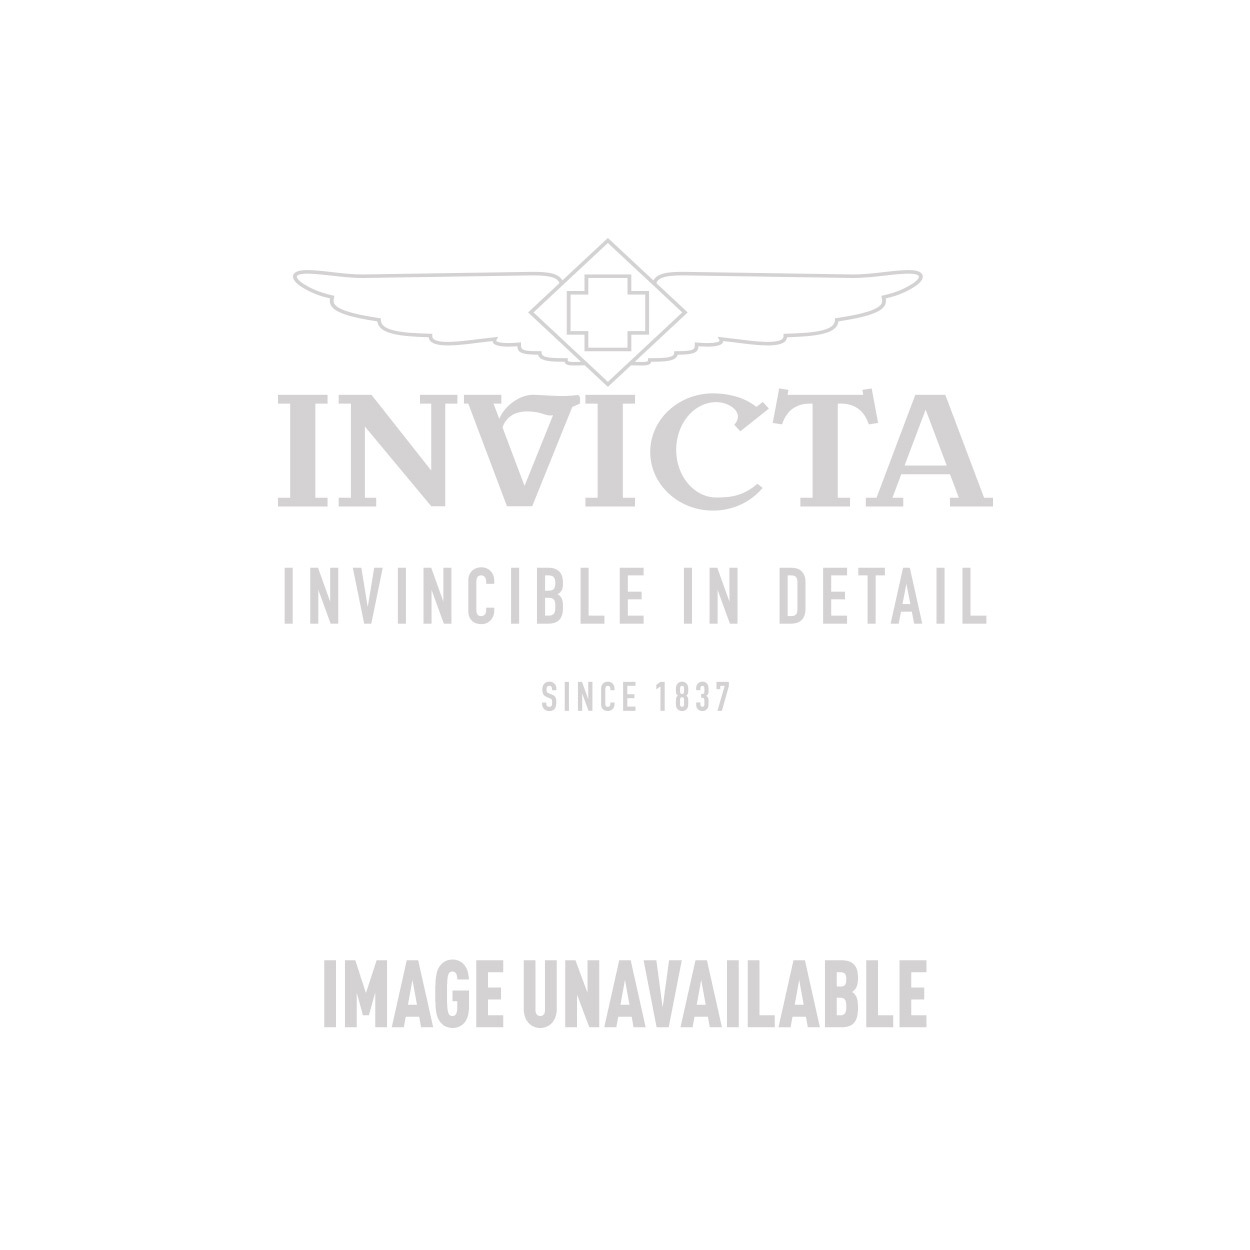 Invicta  Reserve Excursion  Quartz Watch - Stainless Steel case Stainless Steel band - Model 13081